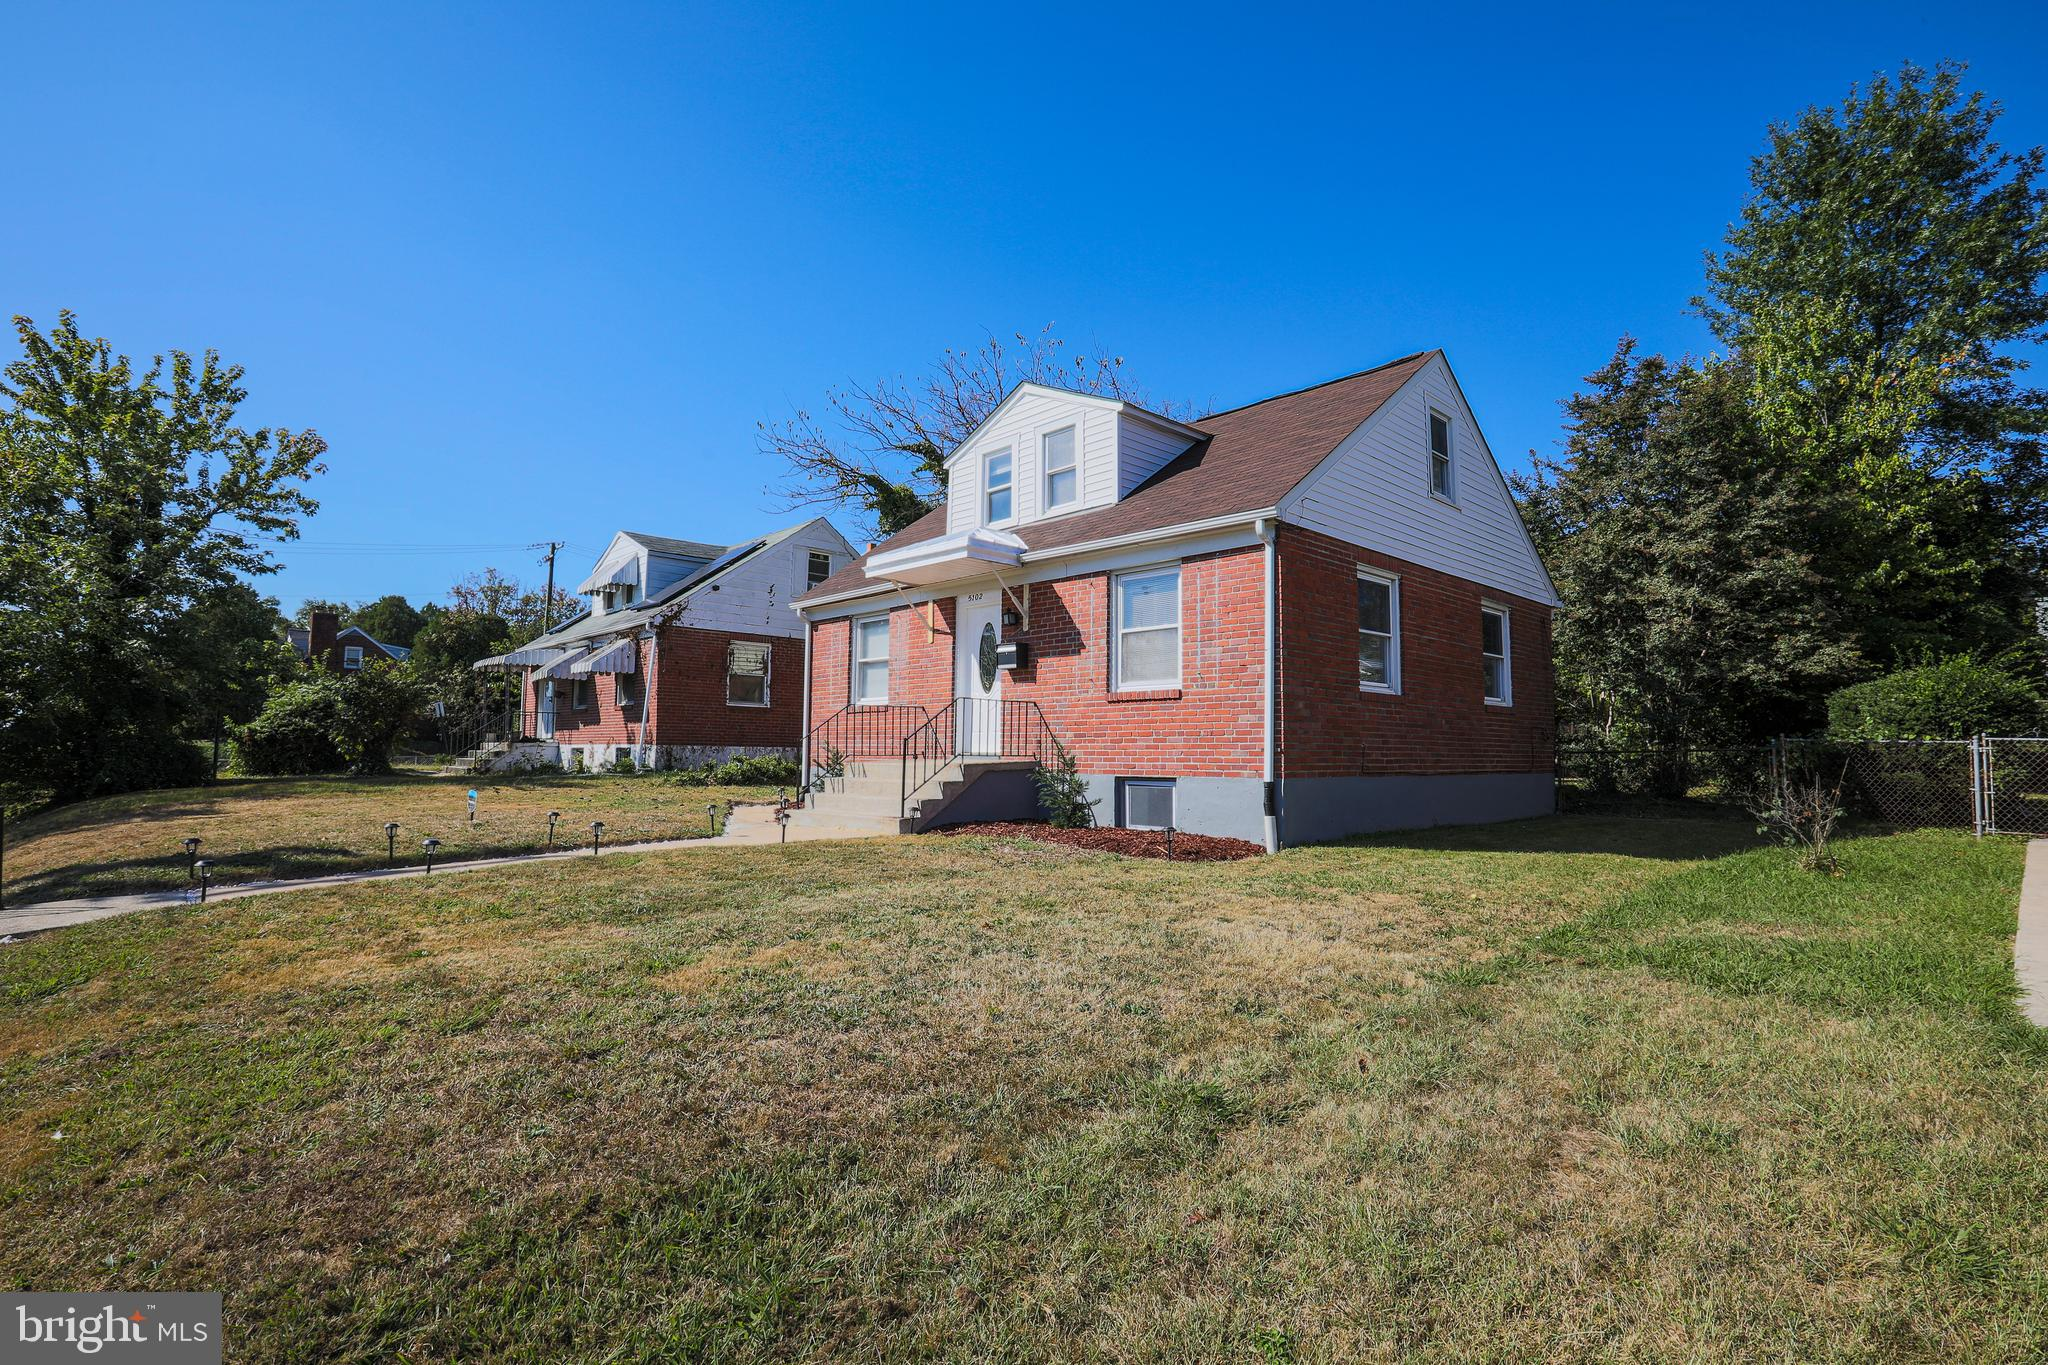 5102 THE ALAMEDA, BALTIMORE, MD 21239